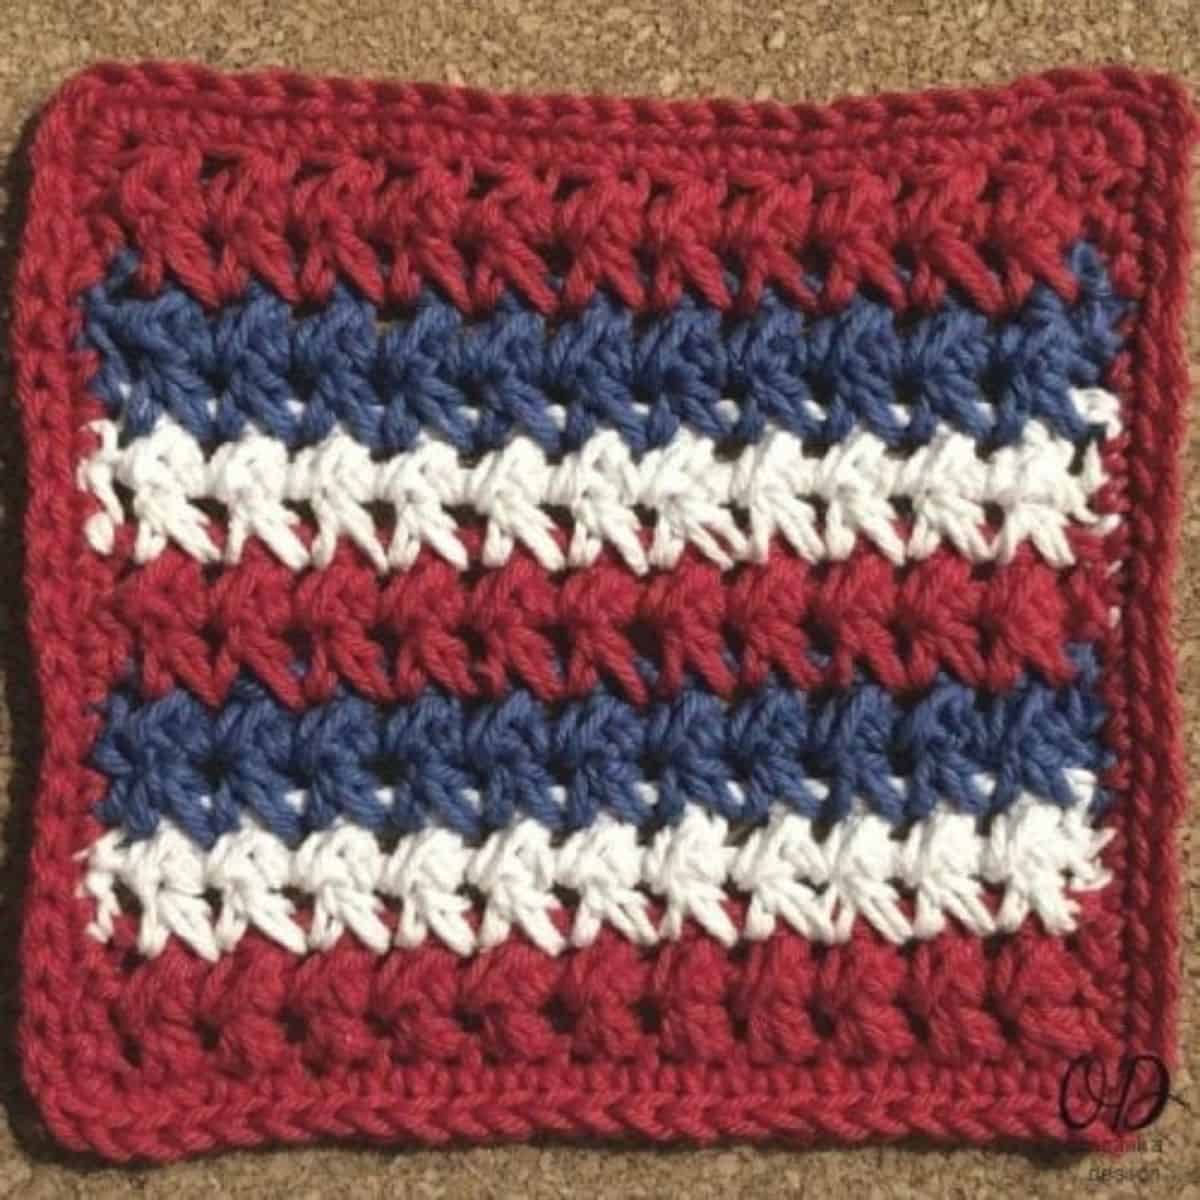 red white and blue striped square crochet swatch